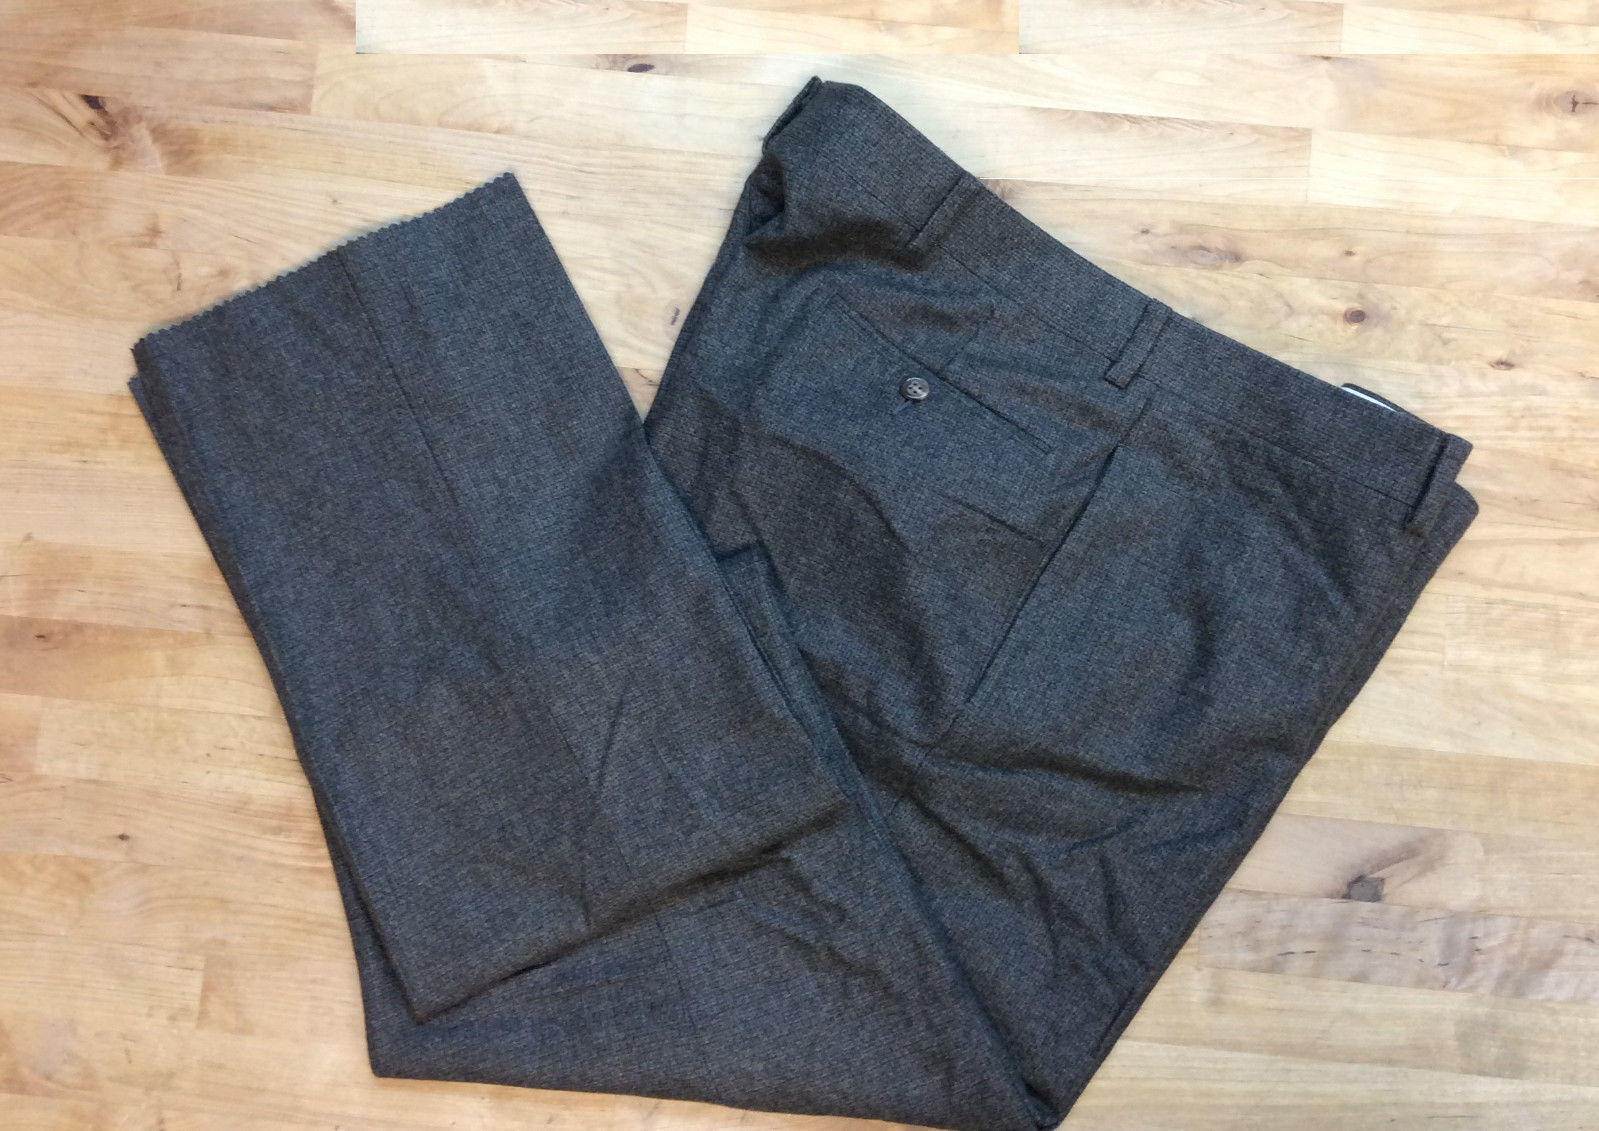 Primary image for $398 Polo Ralph Lauren Men's Virgin Wool Italy Pants, Olive, Size 38 Reg